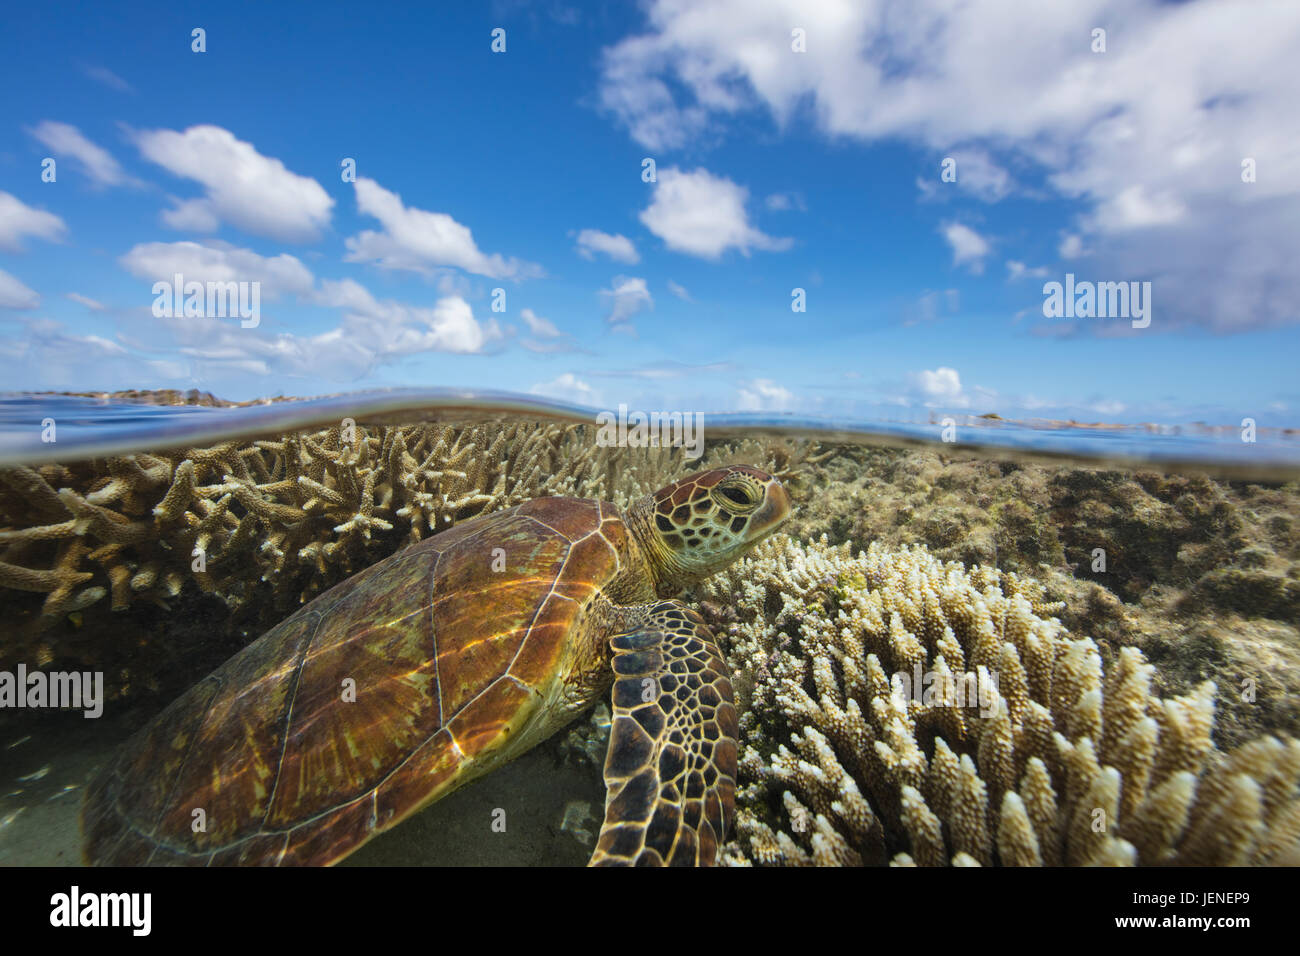 Green Sea turtle swimming over a coral reef, Lady Elliot Island, Queensland, Australia - Stock Image